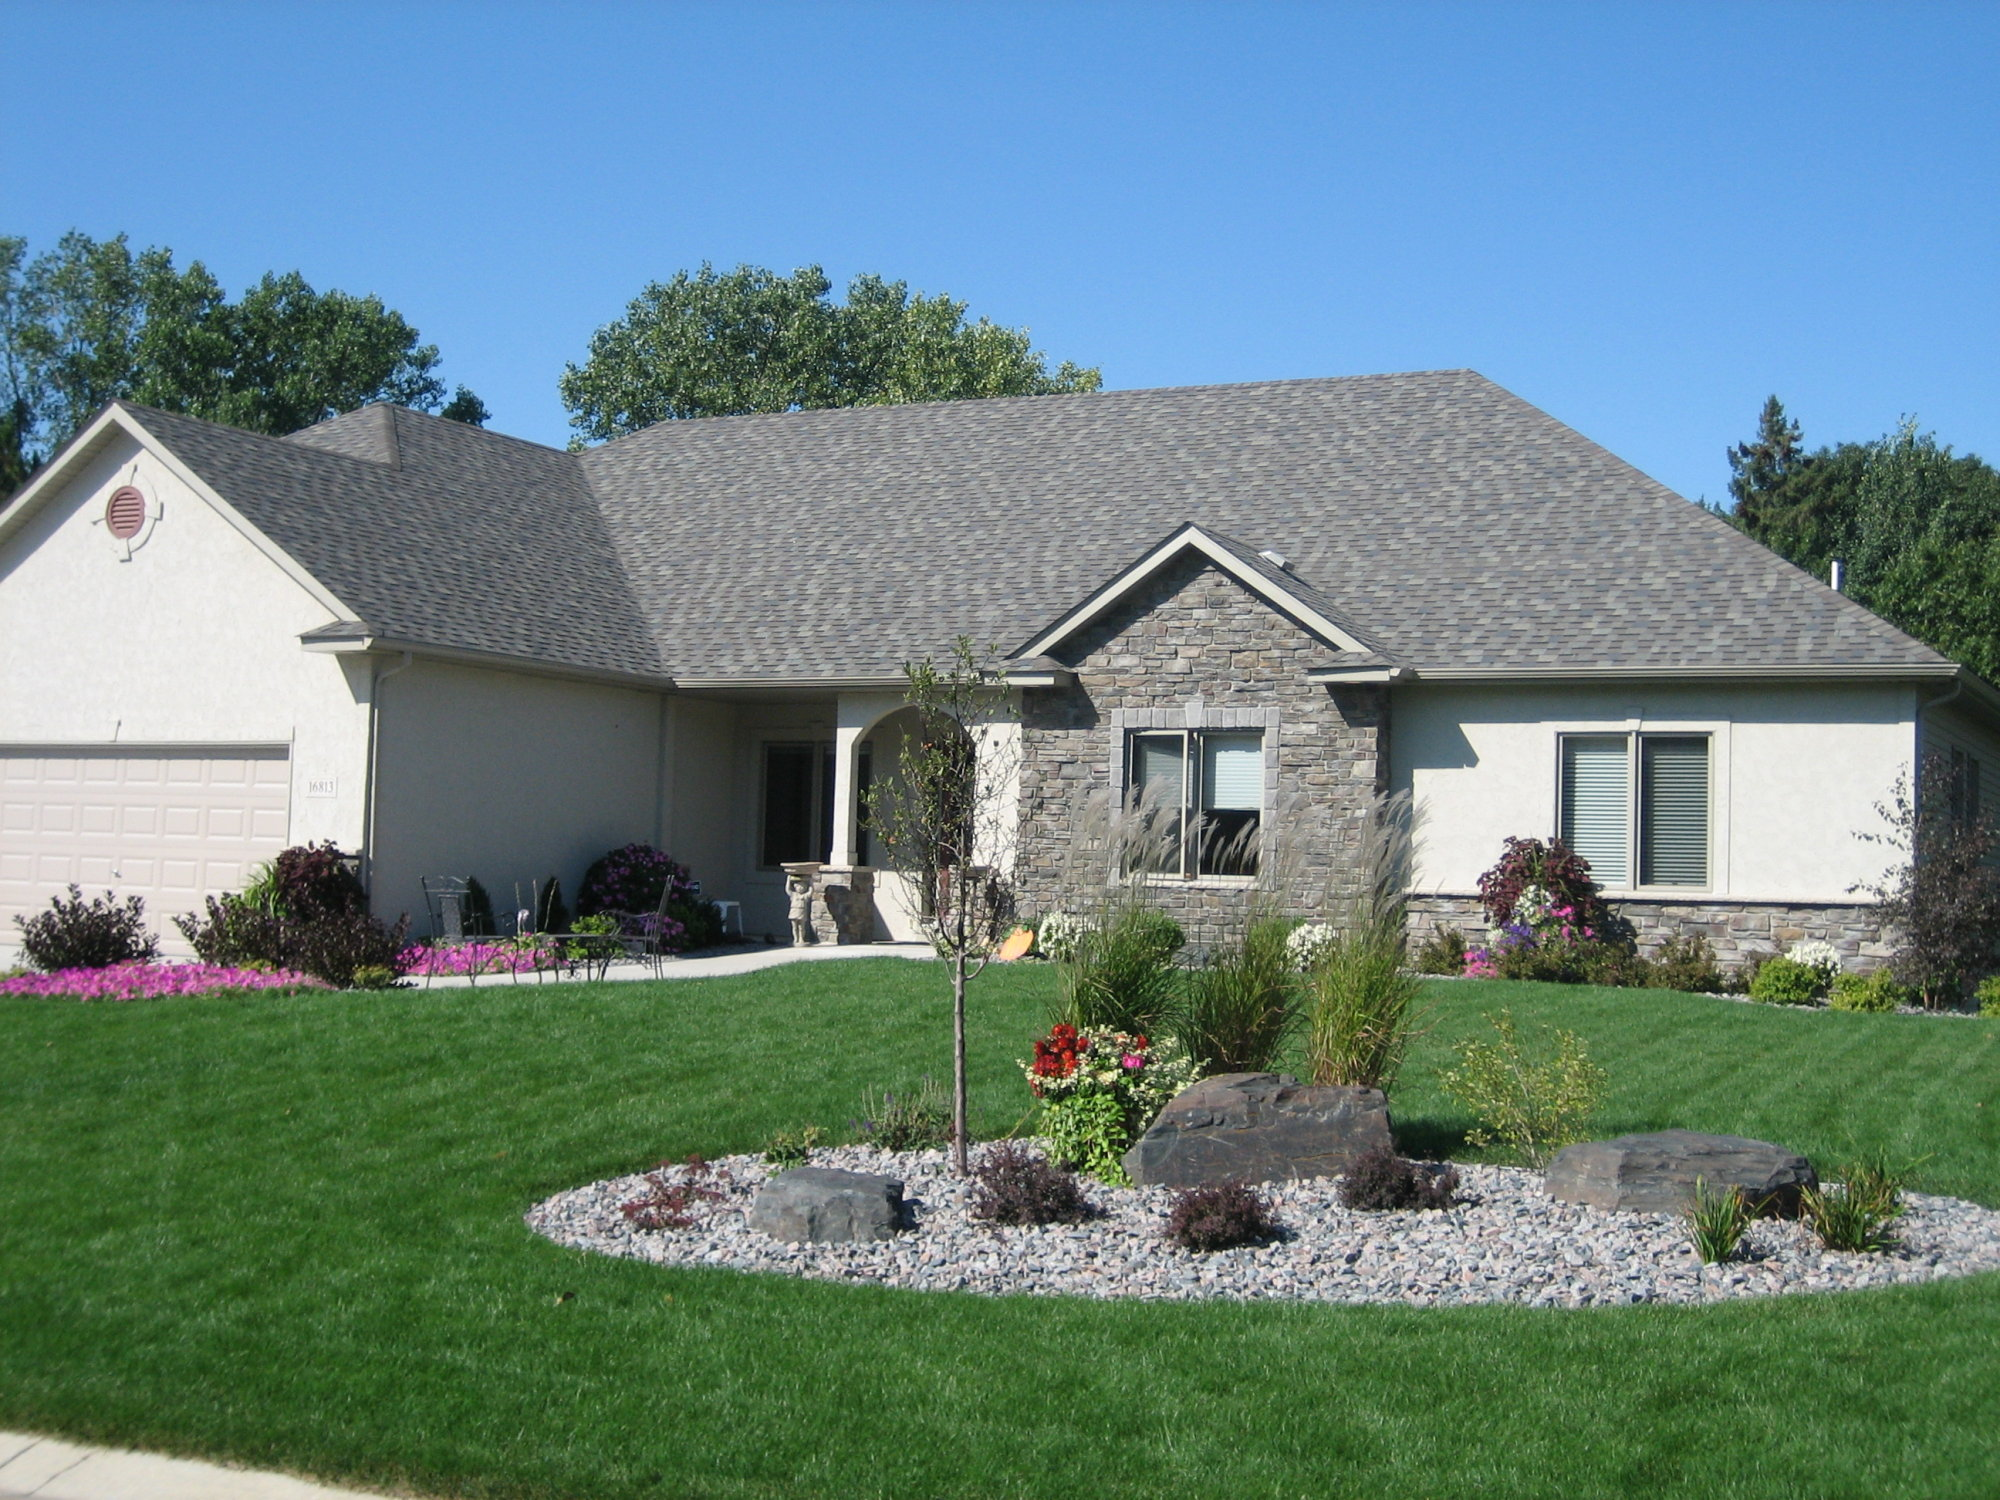 1000 images about modest landscaping ideas on pinterest on front yard landscaping ideas id=54775